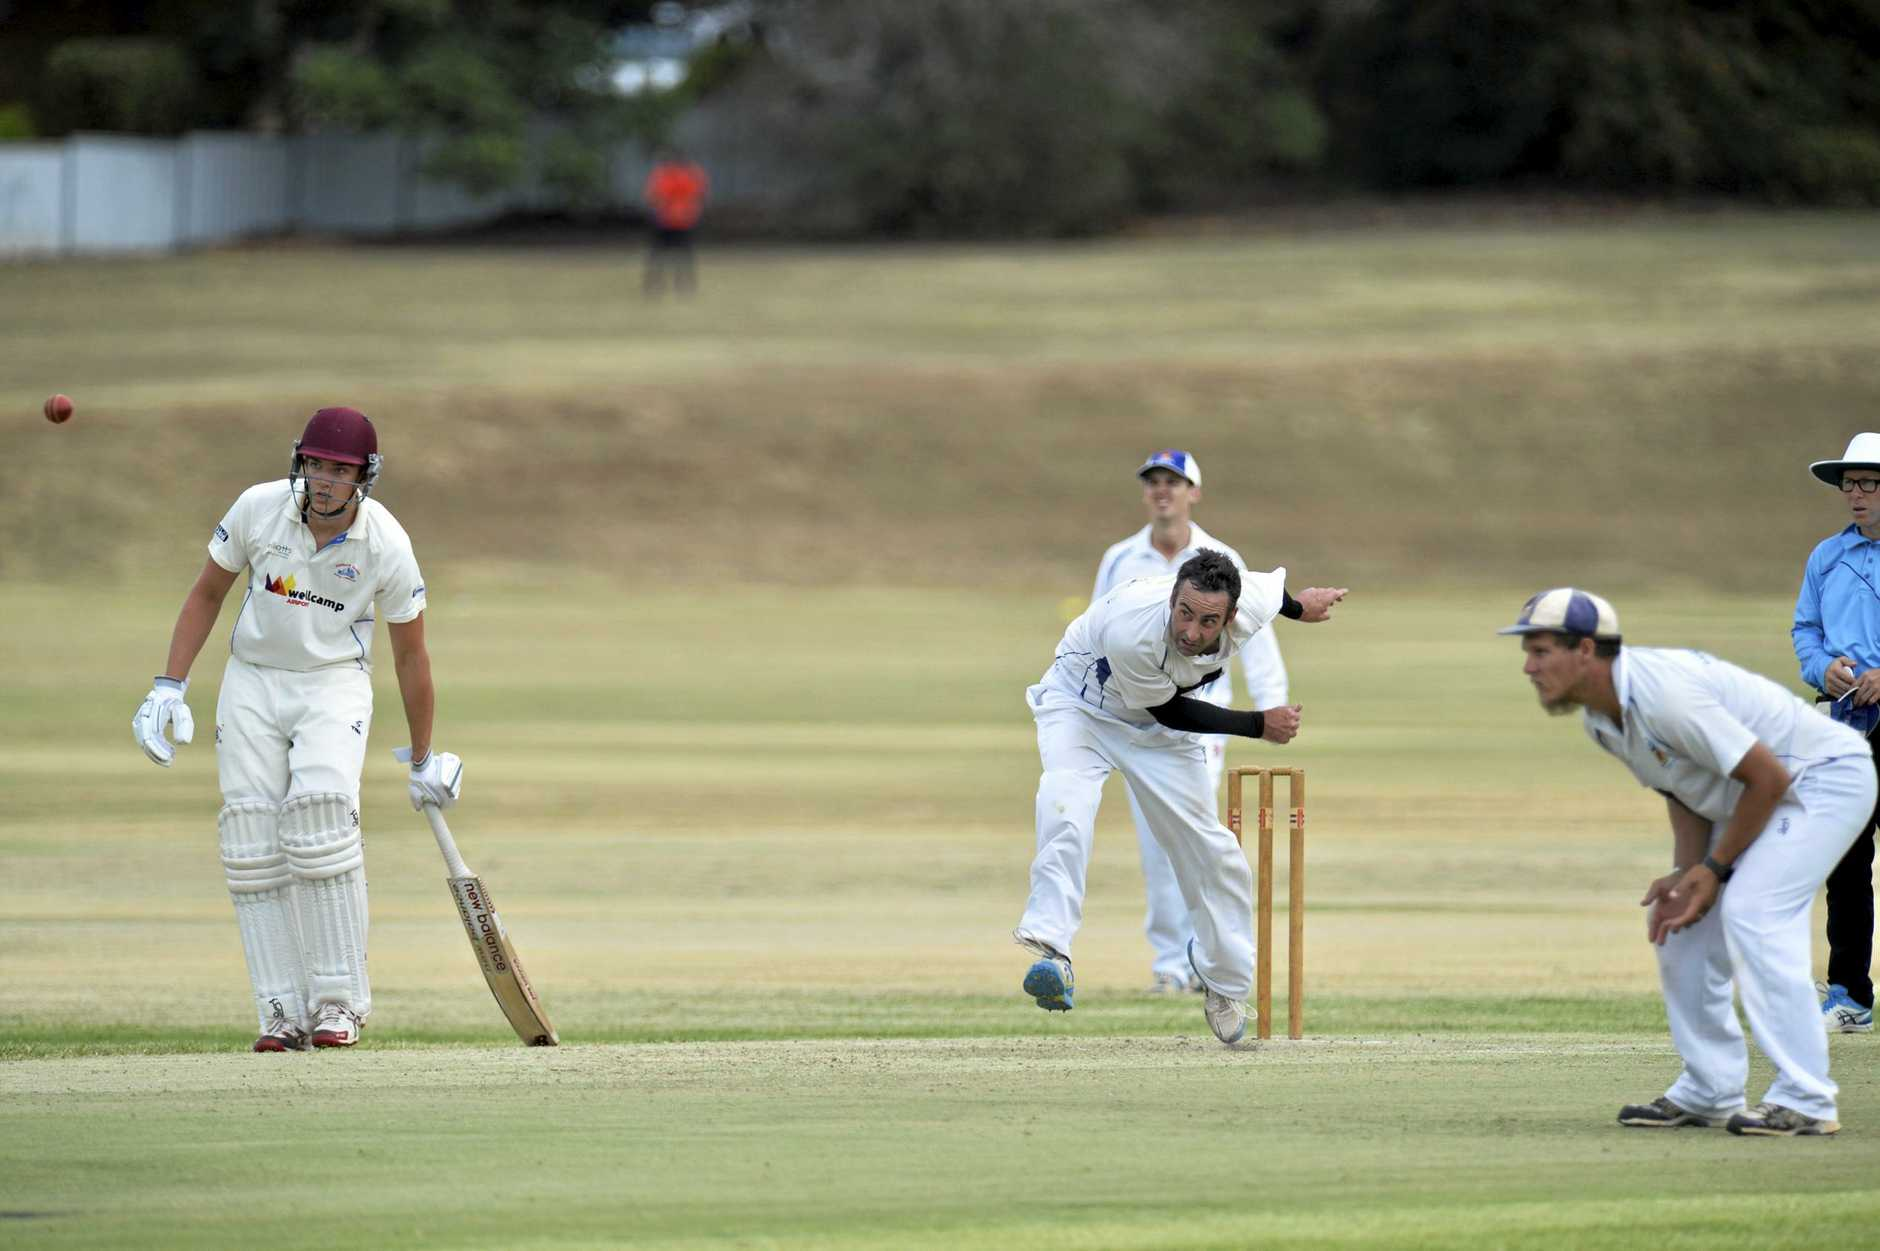 Rick Smith's experience will be vital for the Toowoomba Plunkett Cup team against Ipswich and West Moreton.